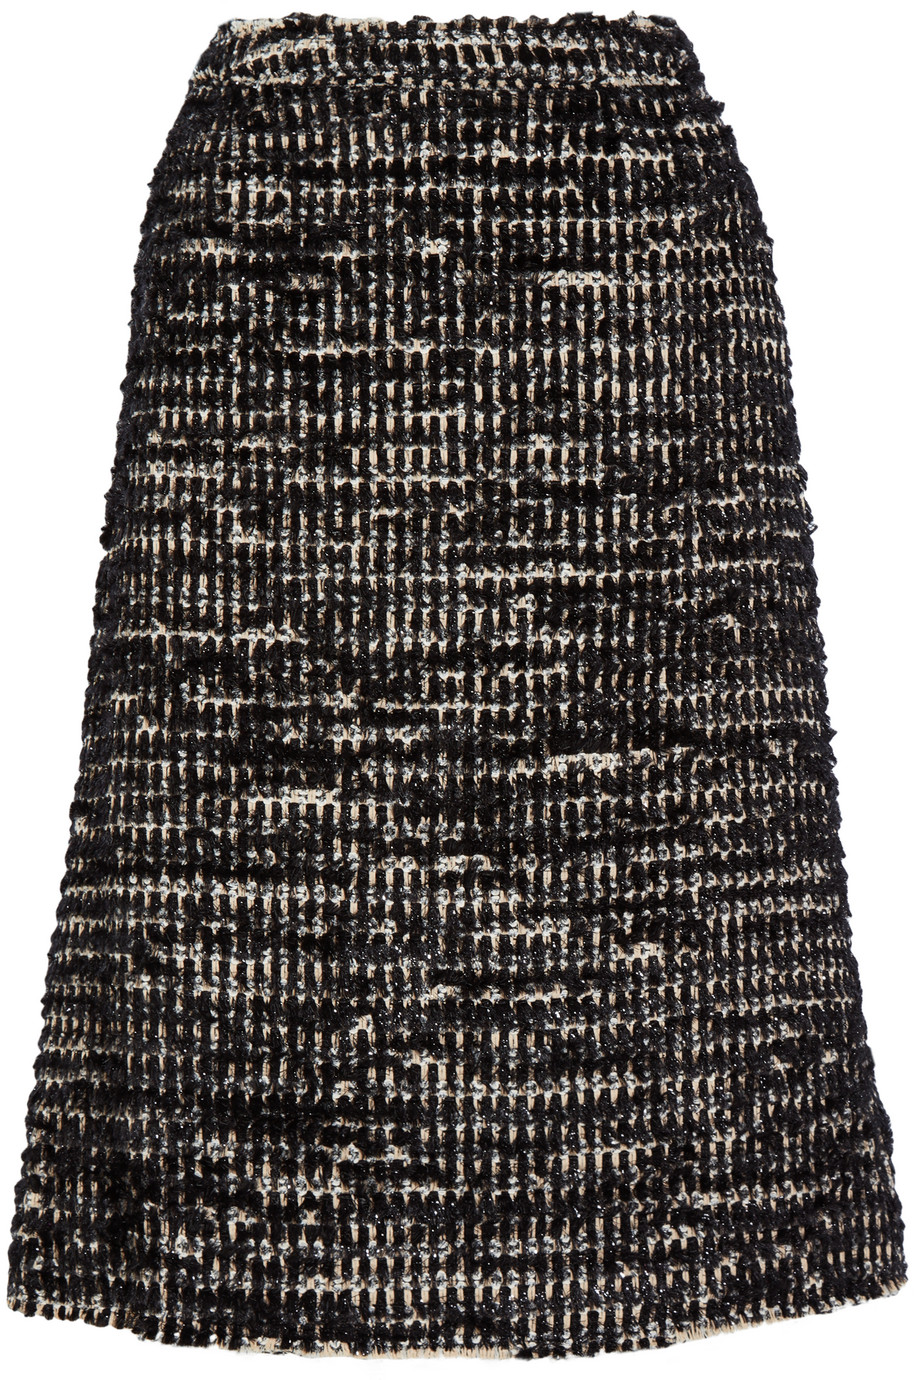 Simone Rocha Metallic Tweed Midi Skirt, Size: 8